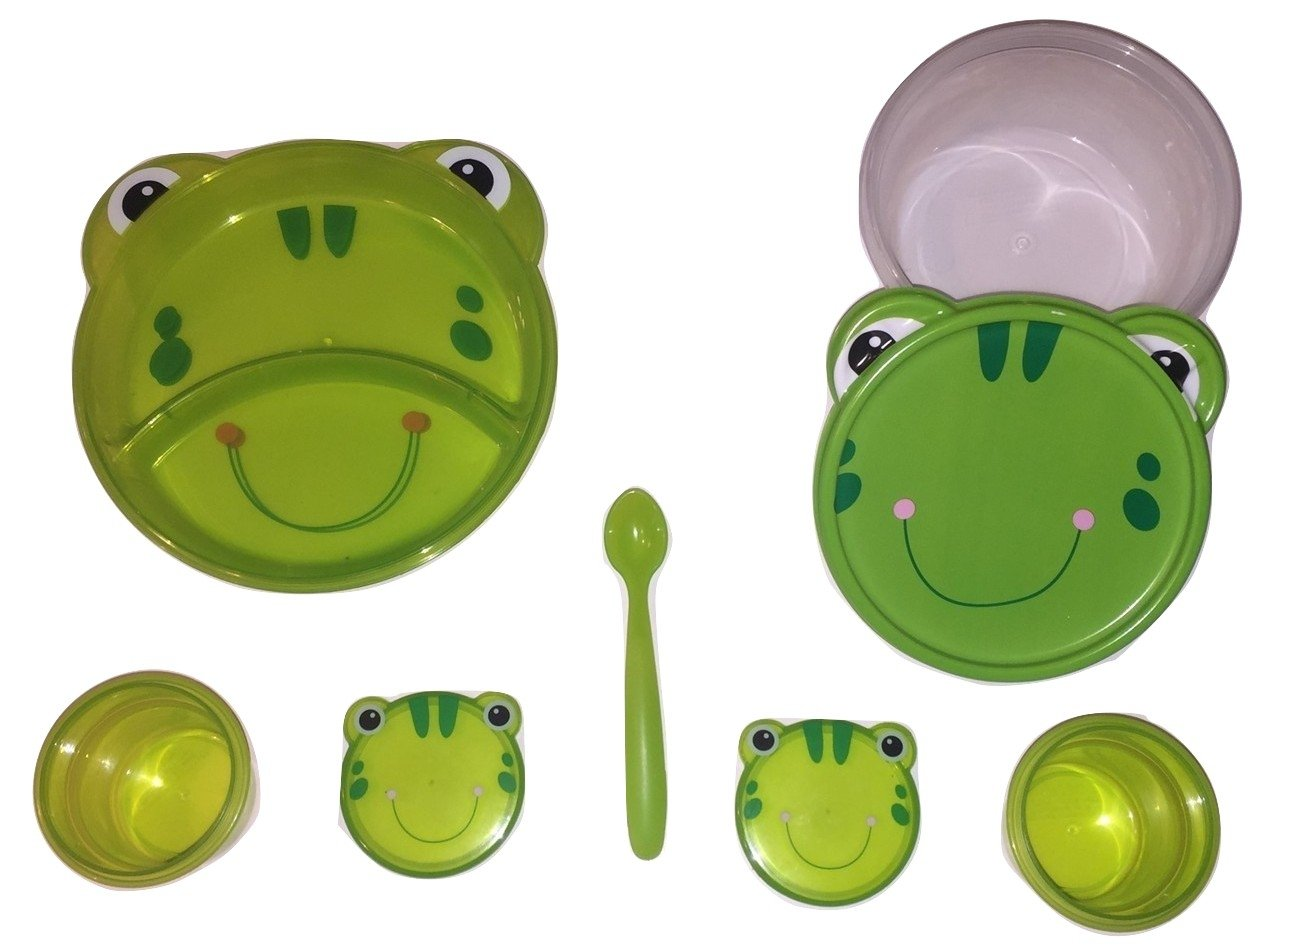 Animal Friends Frog 3 Piece Plastic Dining Set ~ Divided Plates, Snack Containers with Spoons, Travel Bowl with Lid by Greenbrier   B00CVDRHNW